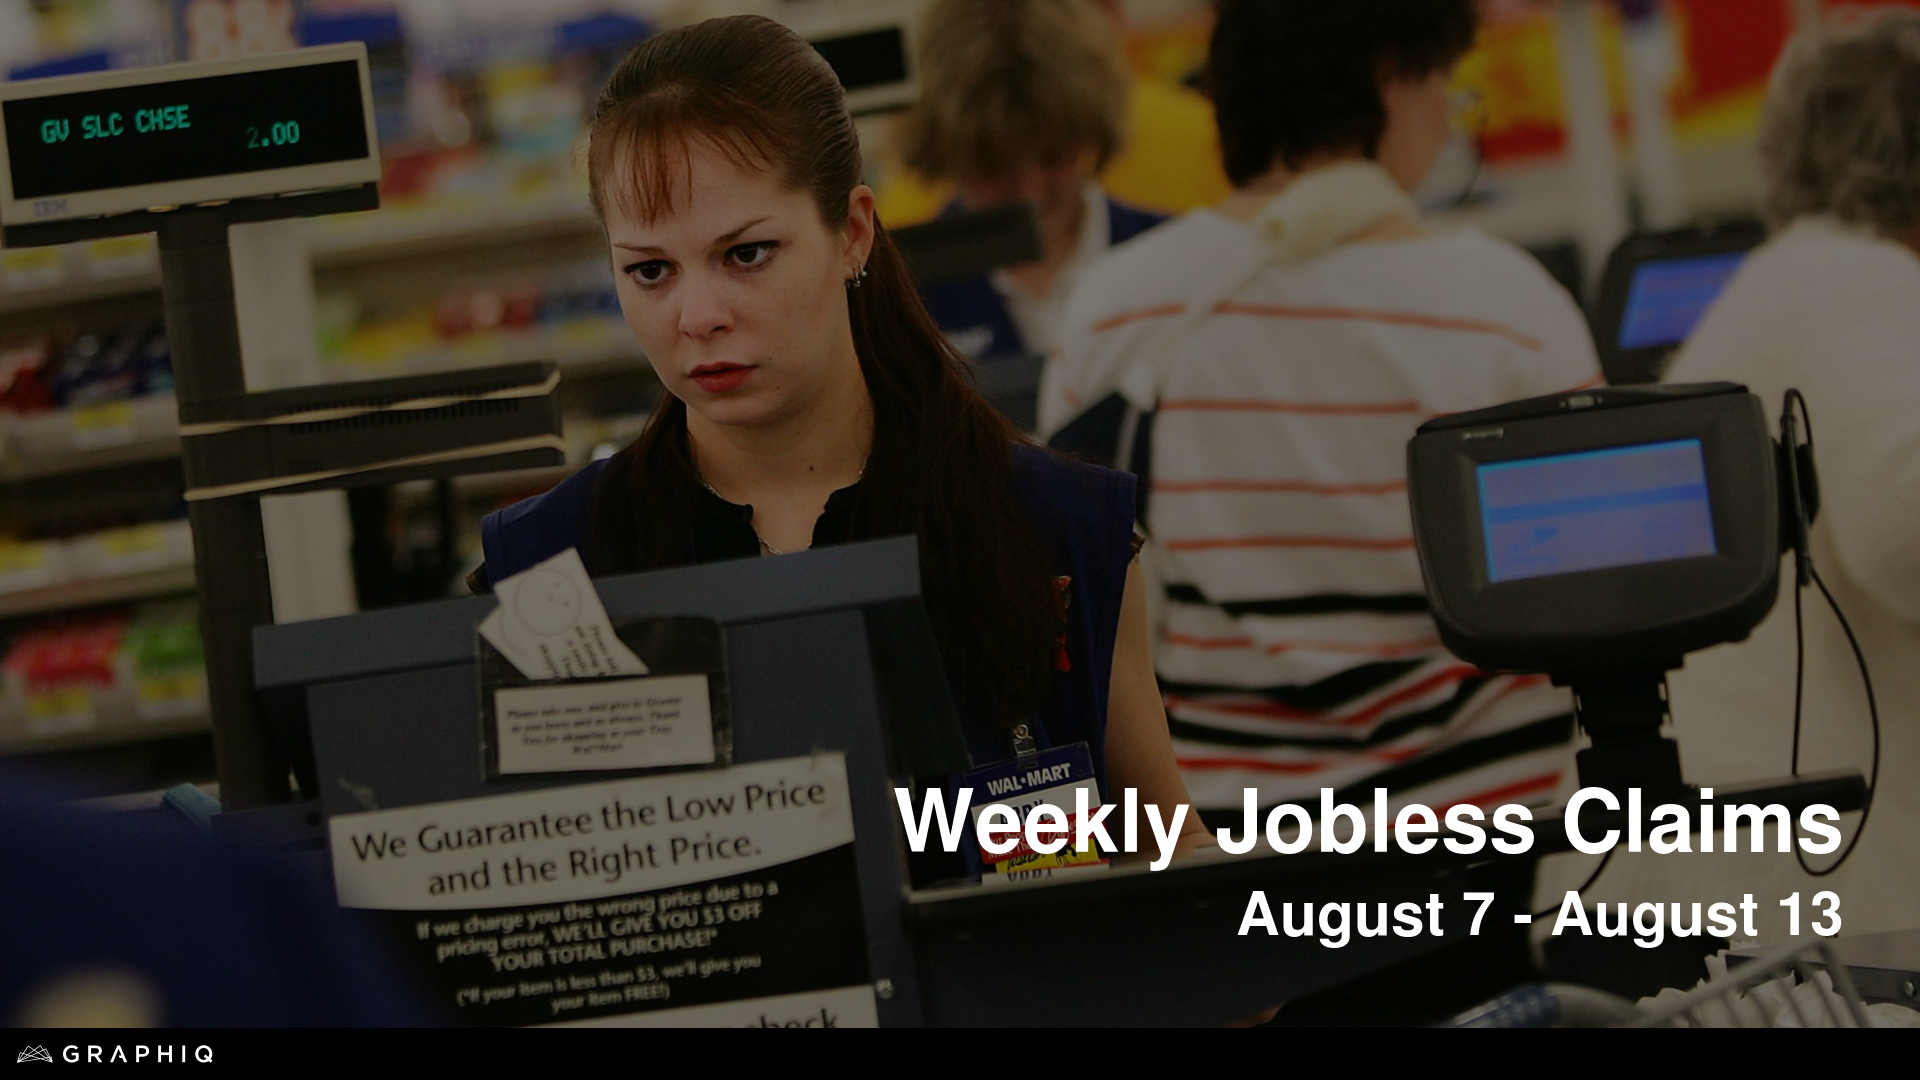 Jobless claims decrease by 4,000